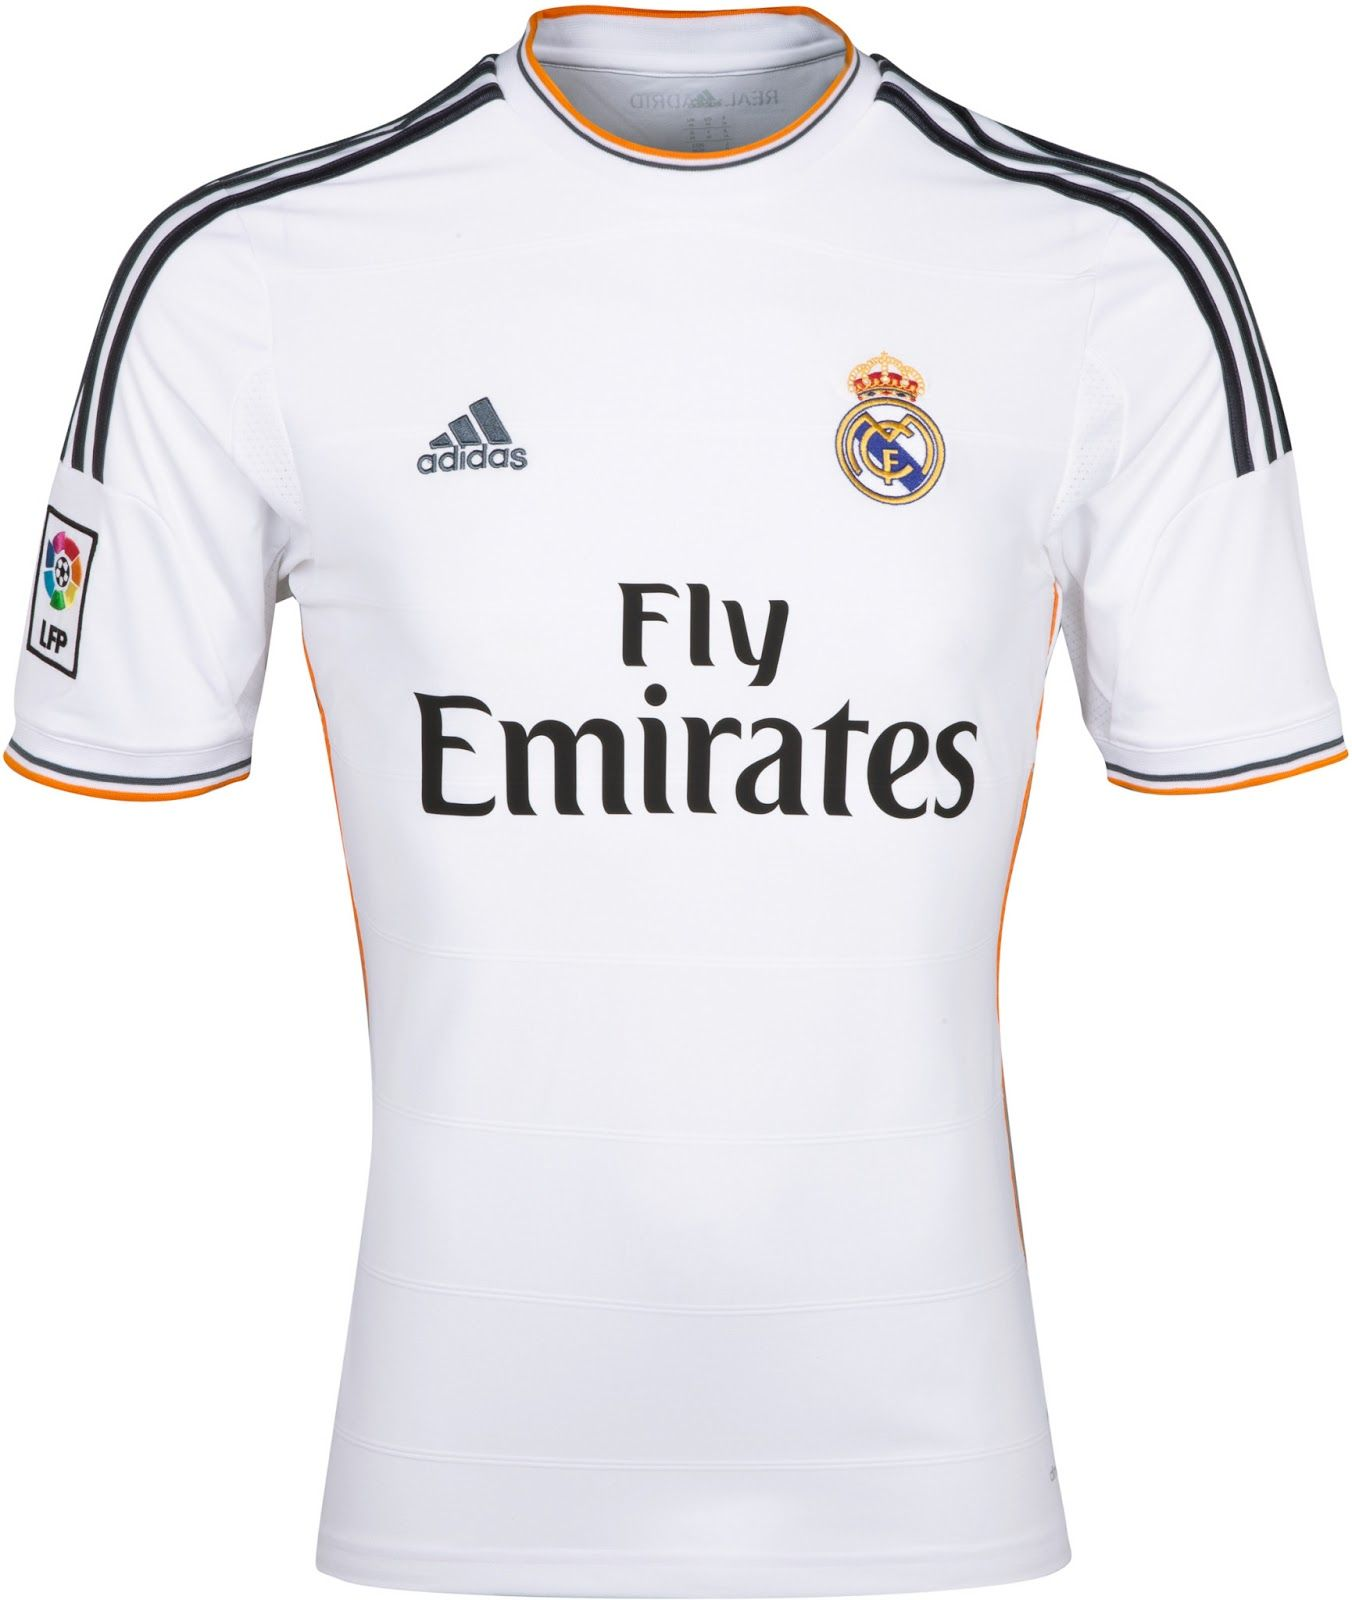 Camiseta MadridSoccerr Camiseta PlayeraY Real Real MadridSoccerr Real PlayeraY Camiseta Camiseta Real PlayeraY MadridSoccerr FJu15cTlK3